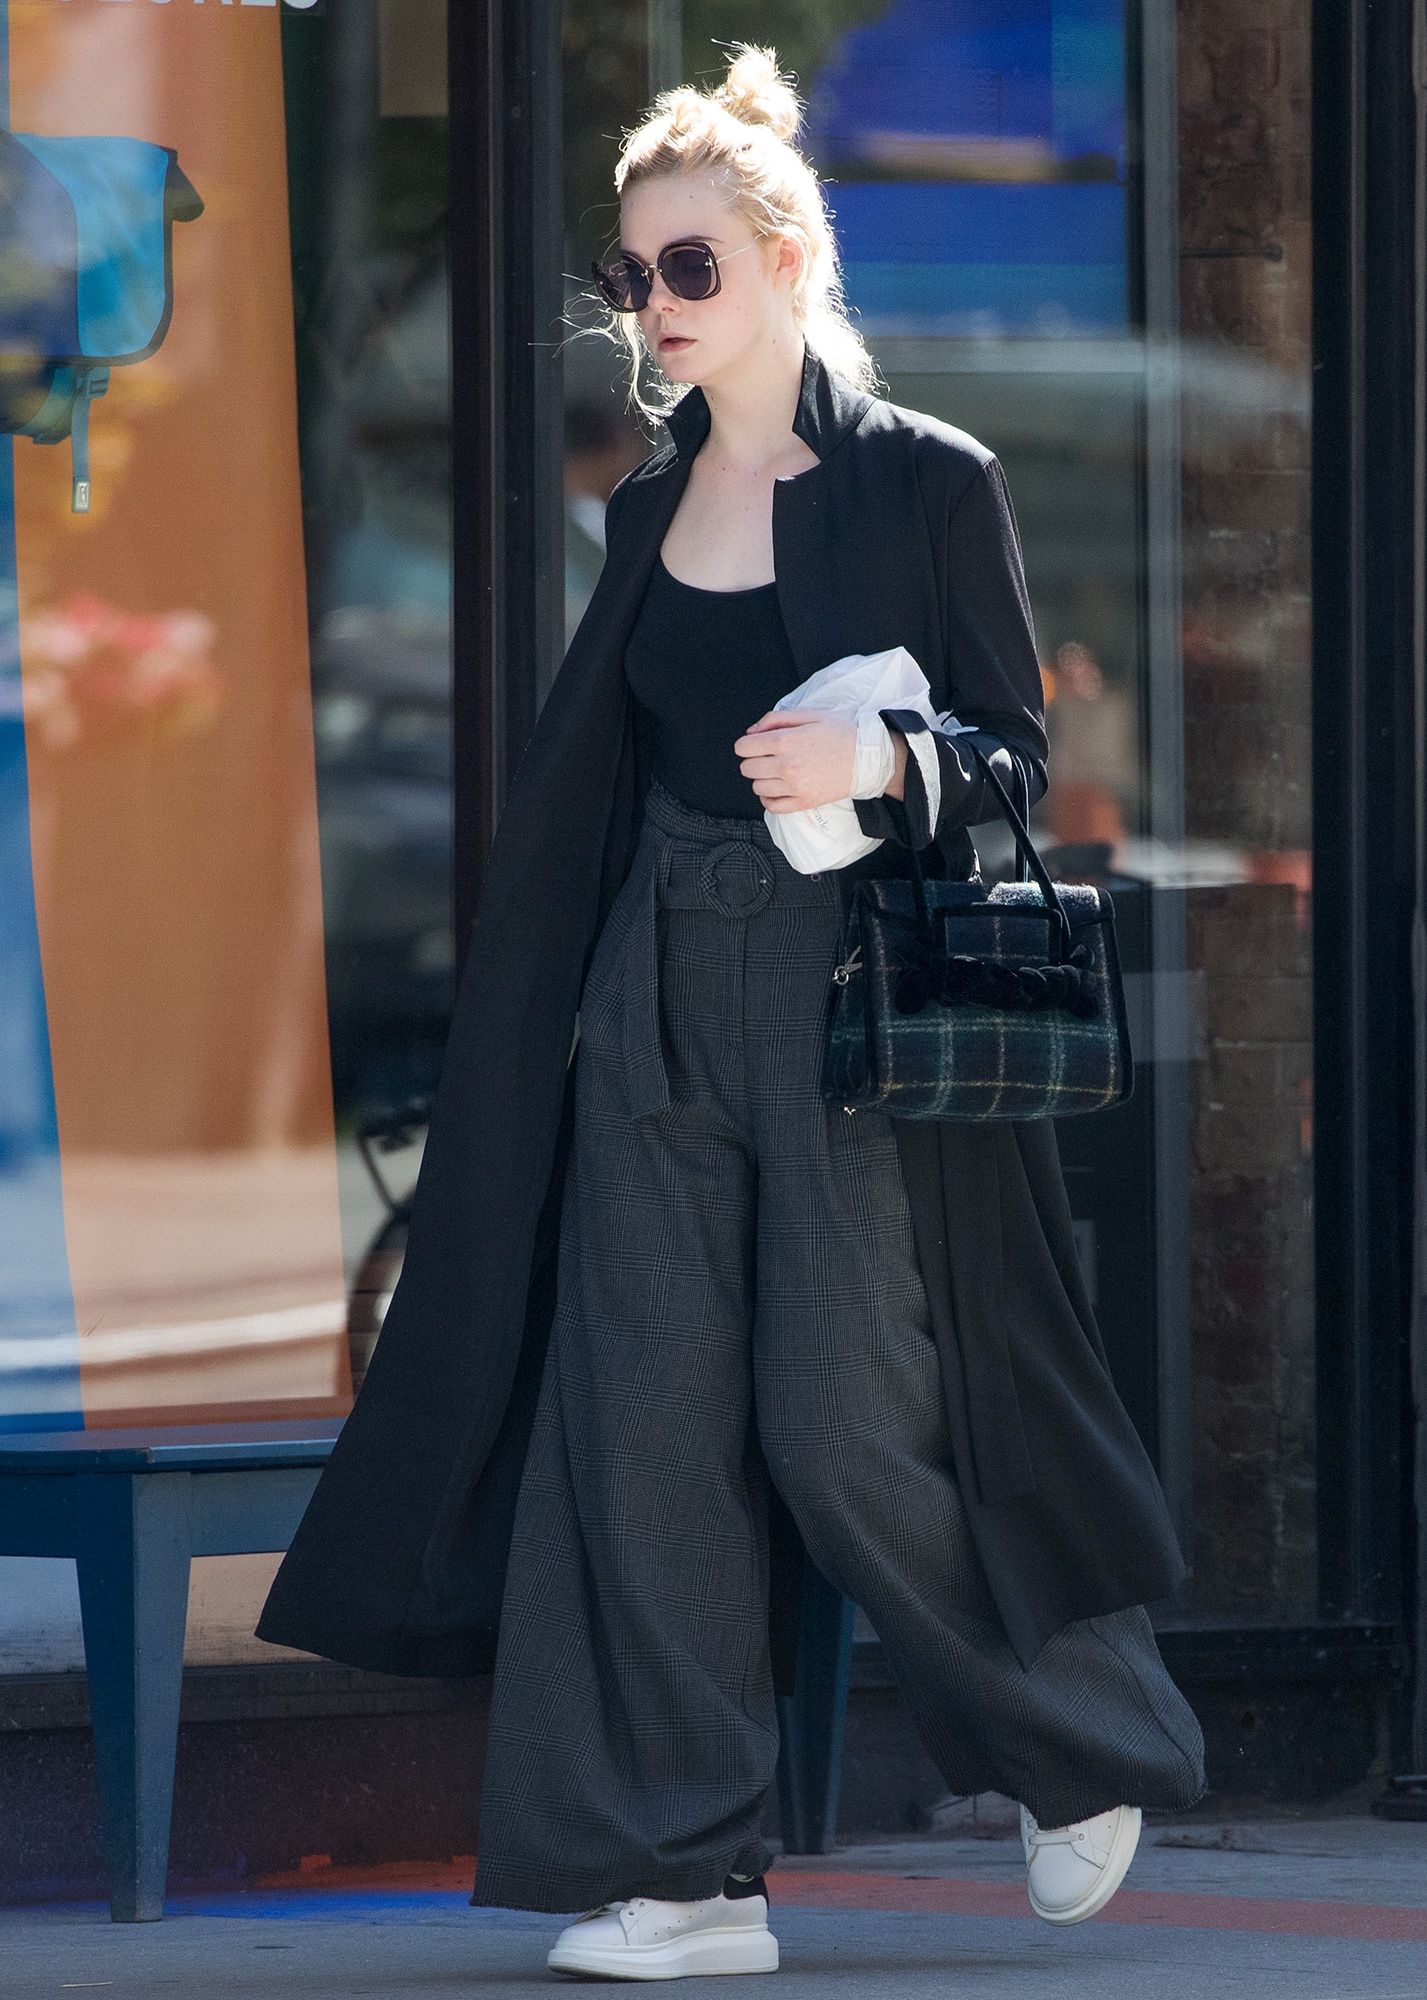 EXCLUSIVE: Elle Fanning seen out and about in NYC